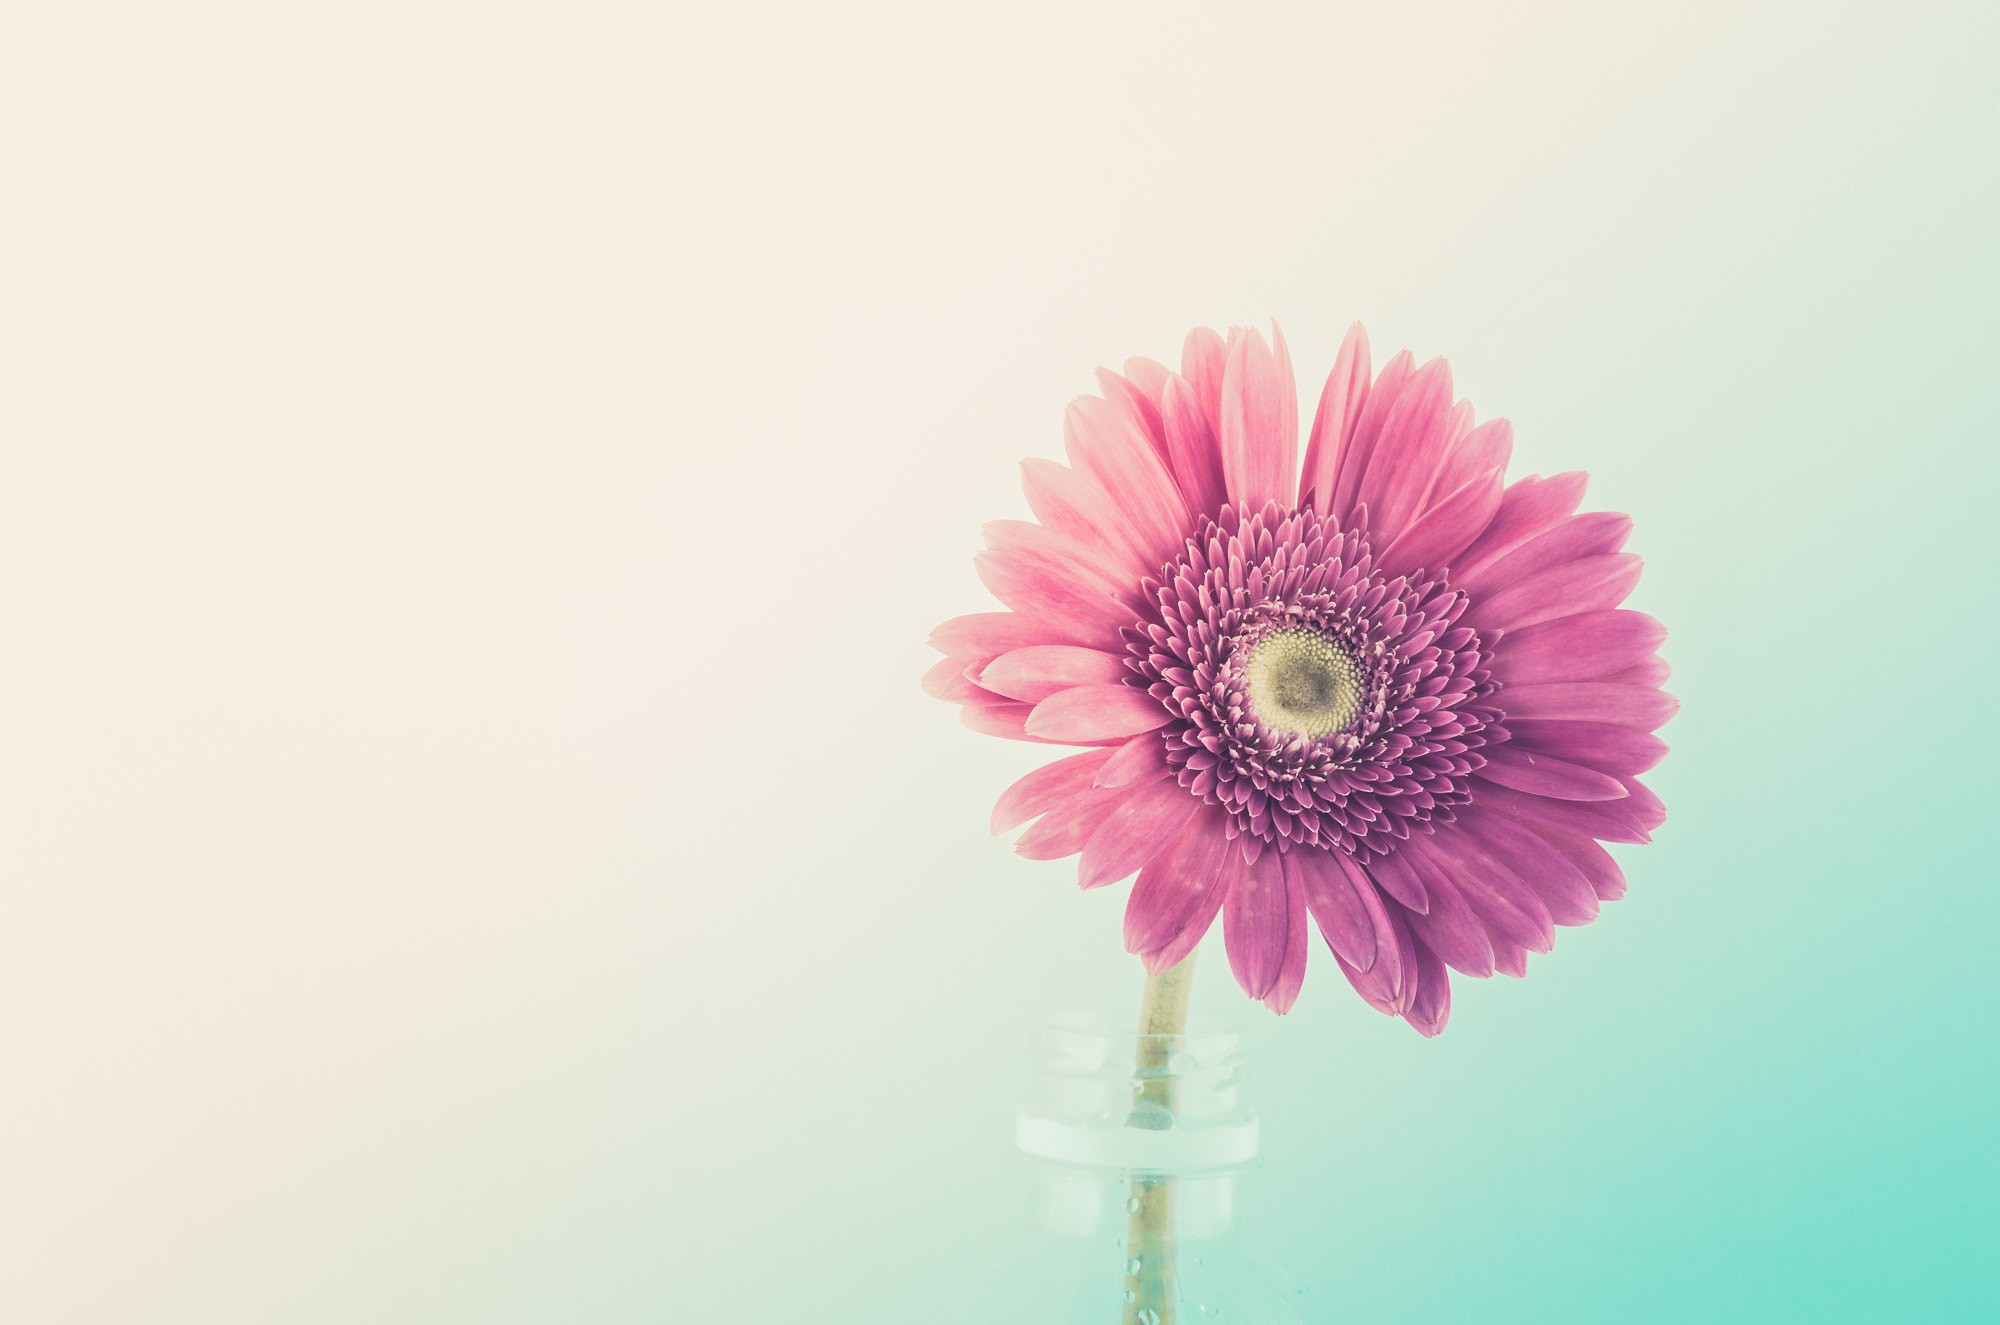 Photograph Pink gerbera daisy by Peerasith Chaisanit on 500px